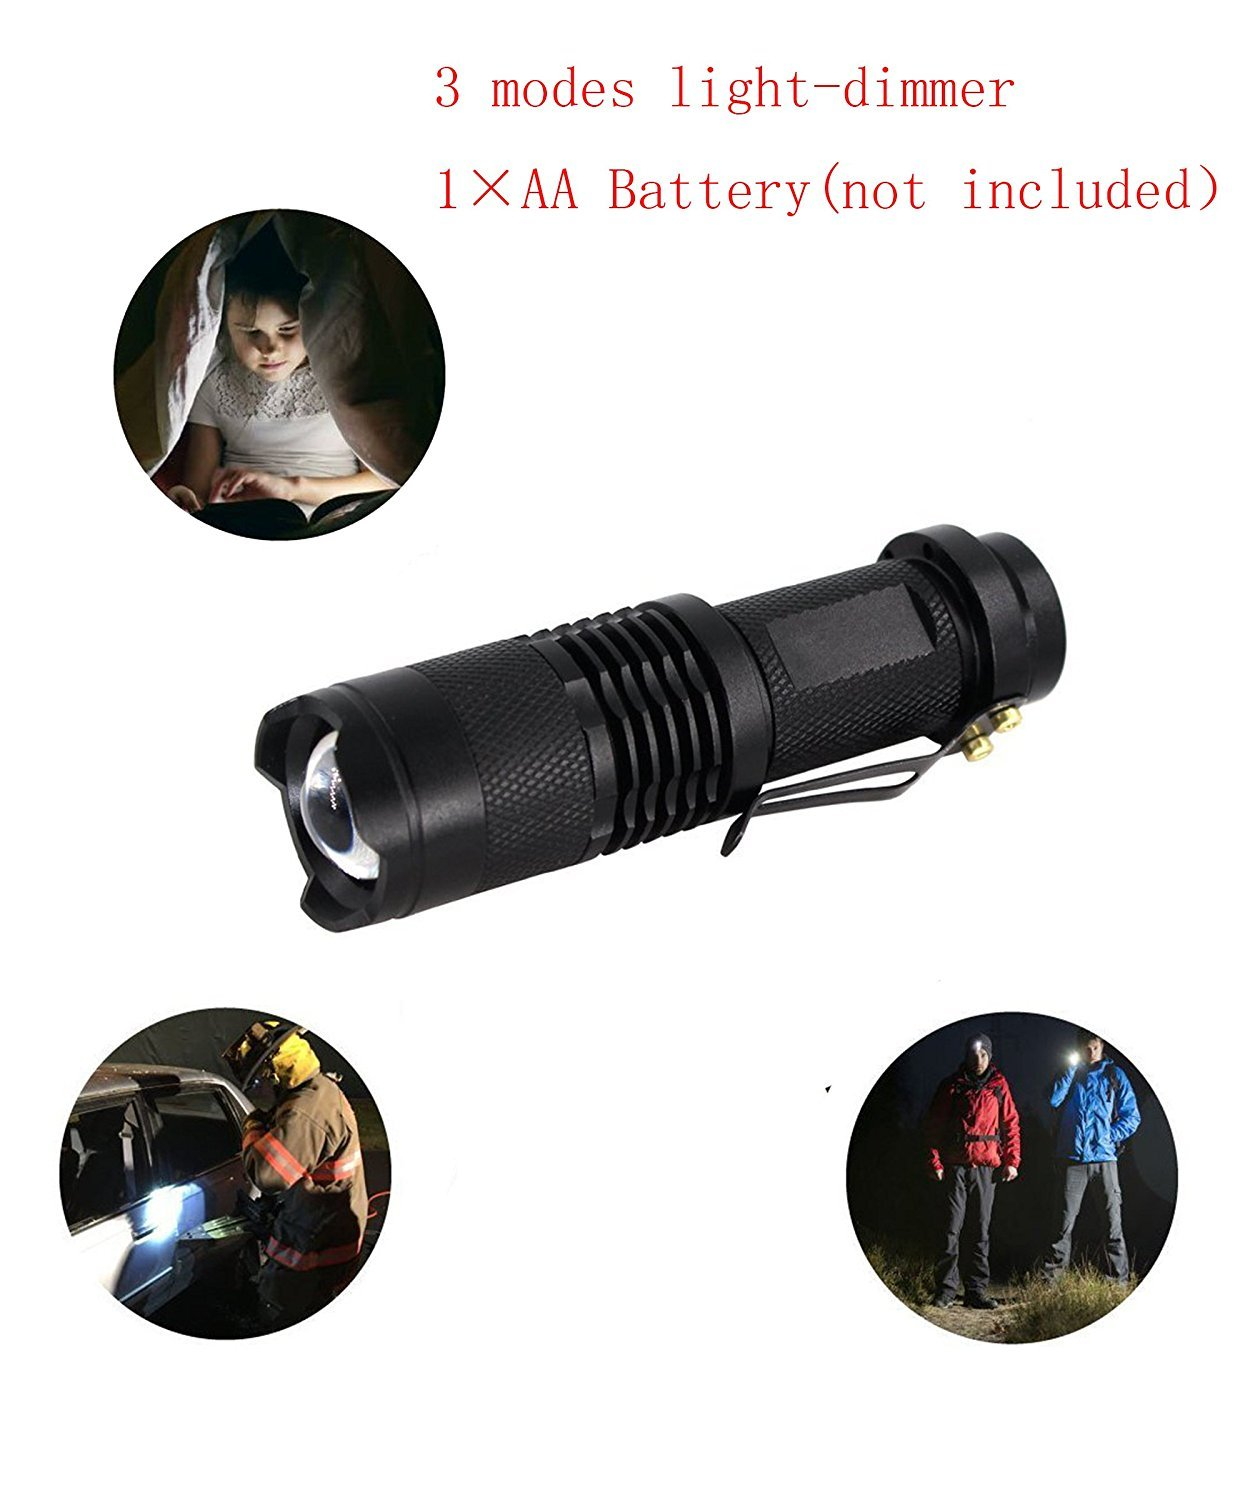 Outdoor Survival Kit,10 in 1 Professional Emergency Survival Kits Tools with Fire Starter Whistle Survival Flashlight Tactical Pen etc For Outdoor Travel Hike Field Camp